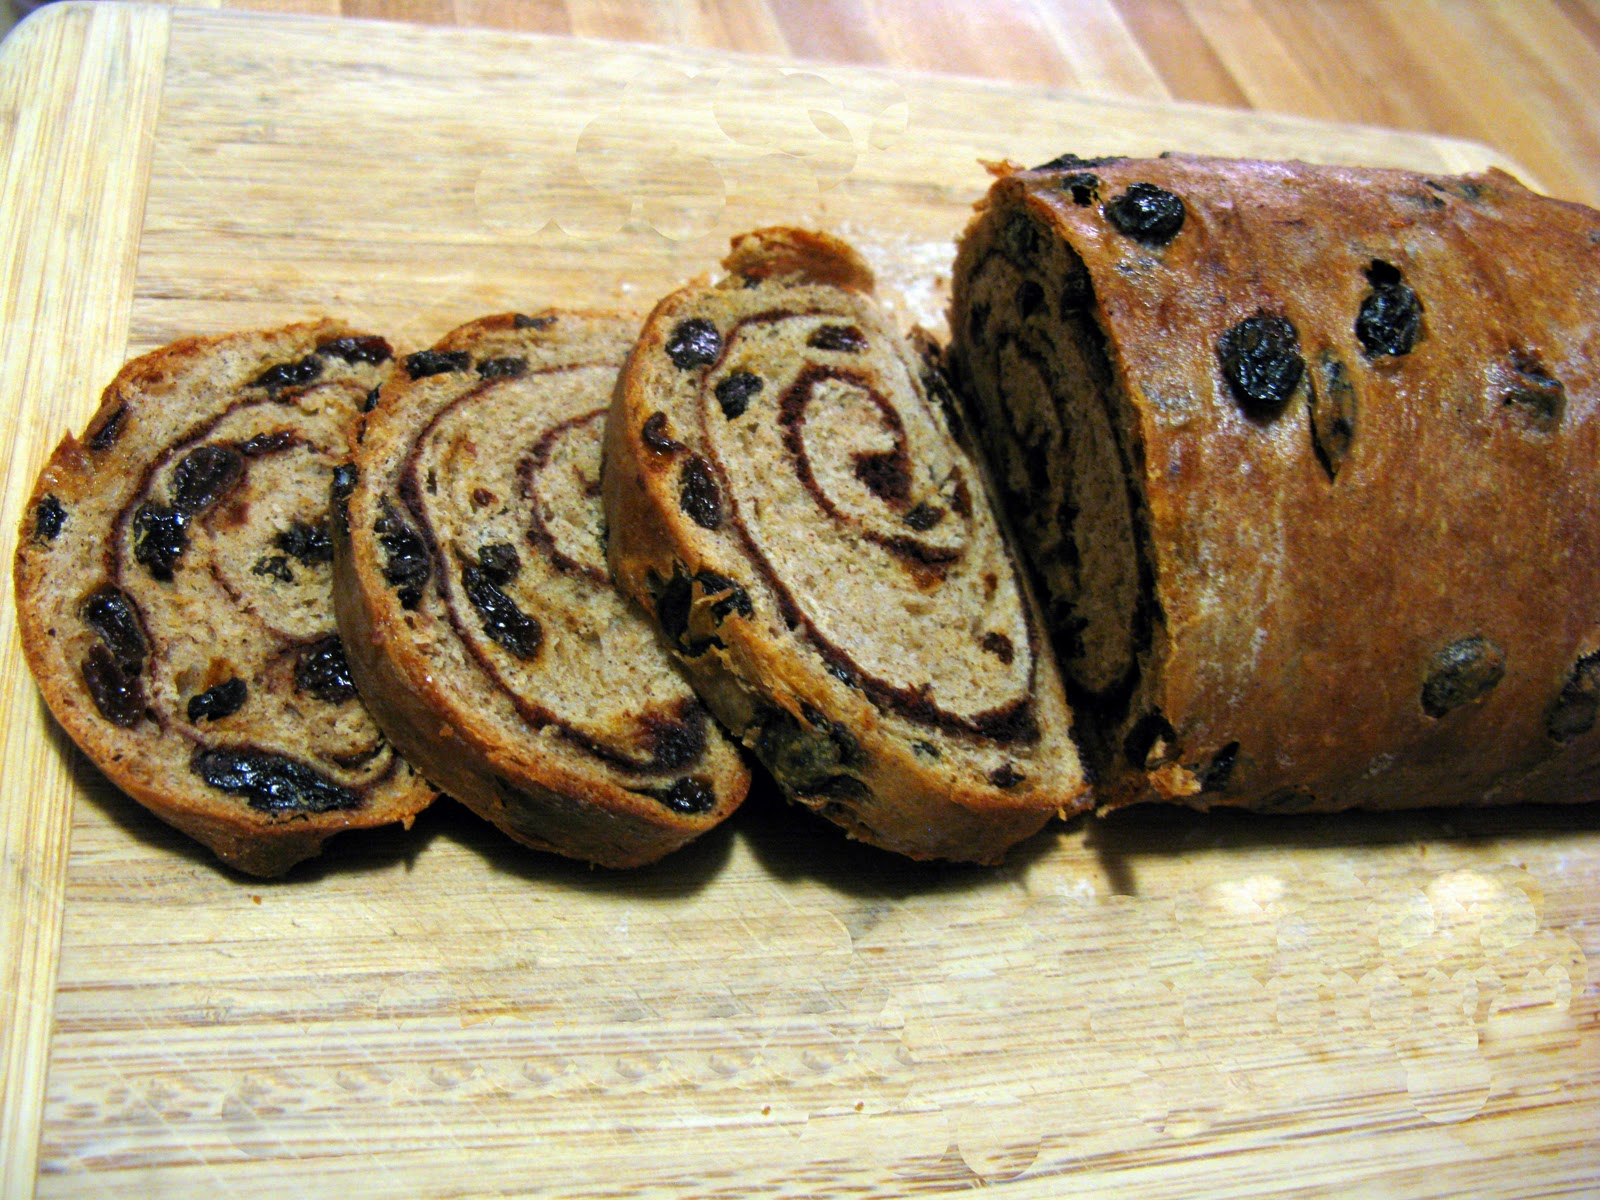 cannabis-raisin-bread-recipe-thcf.jpg